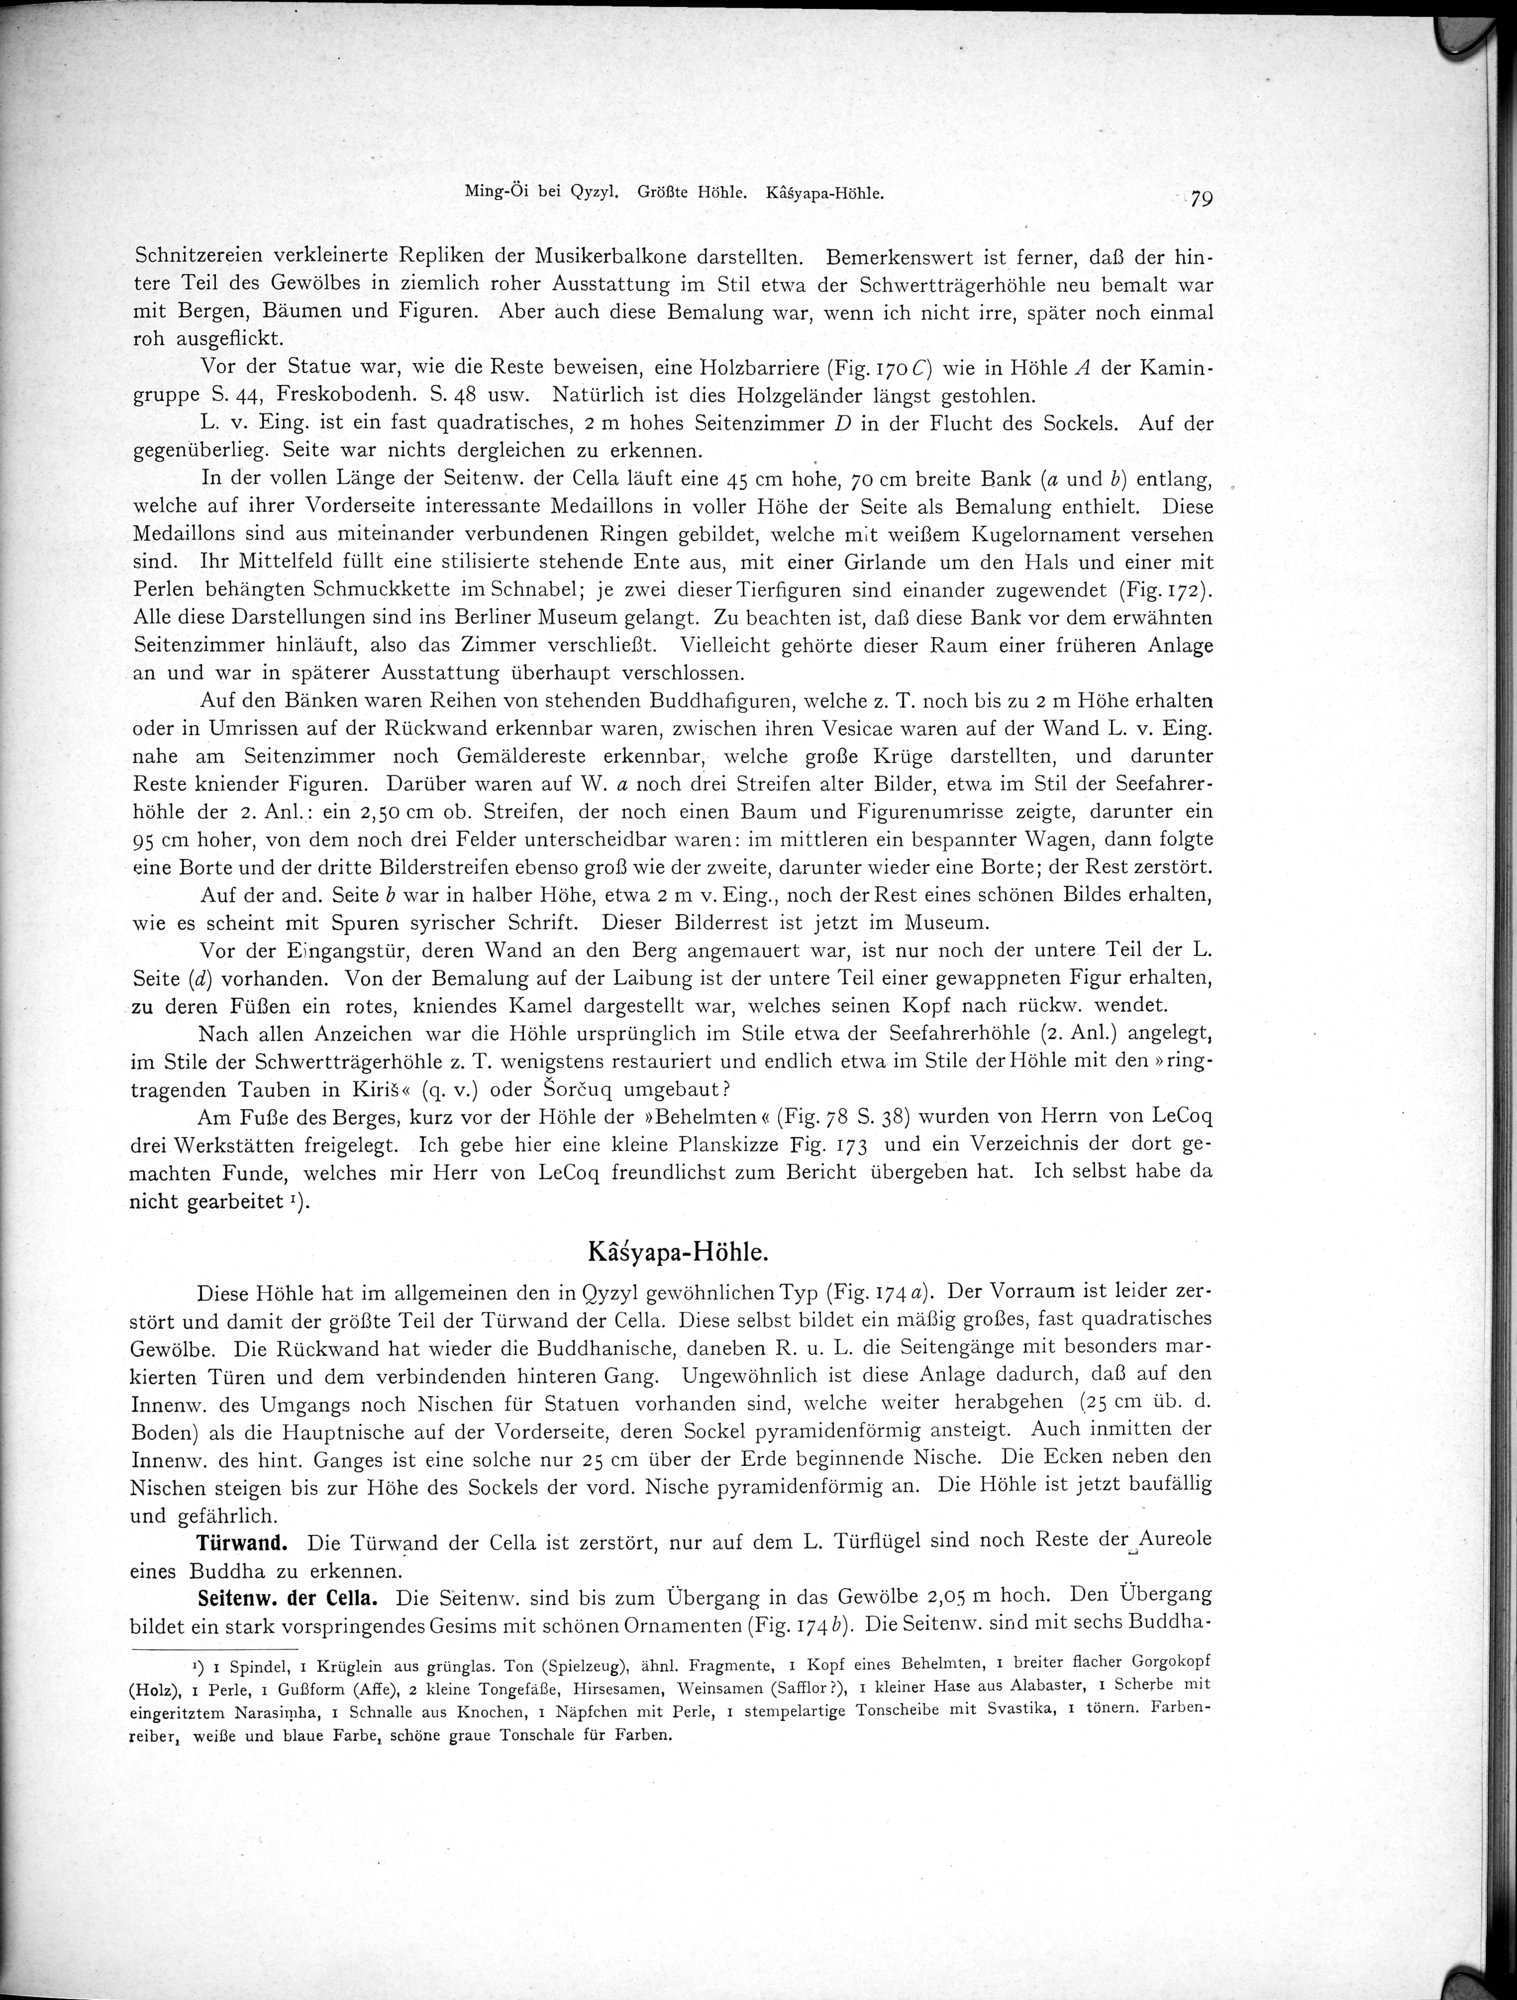 Altbuddhistische Kultstätten in Chinesisch-Turkistan : vol.1 / Page 85 (Grayscale High Resolution Image)